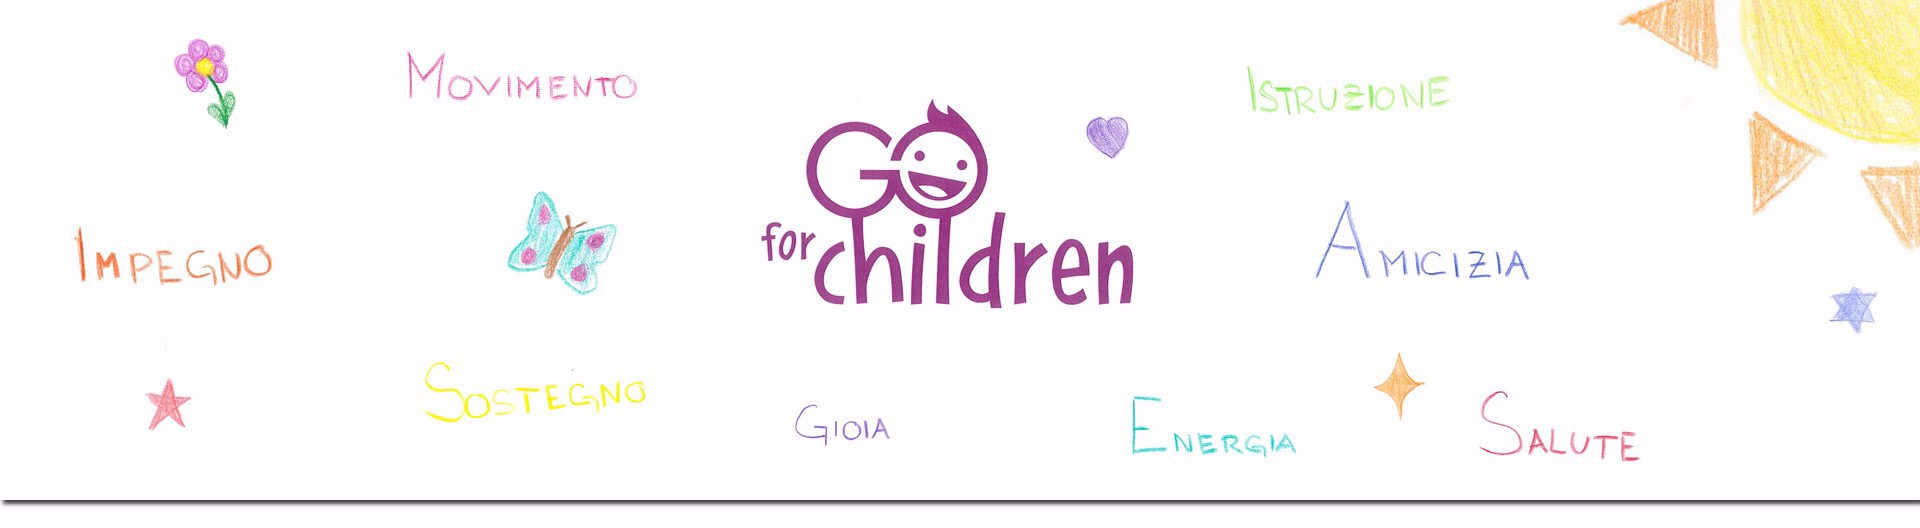 slide_go4children